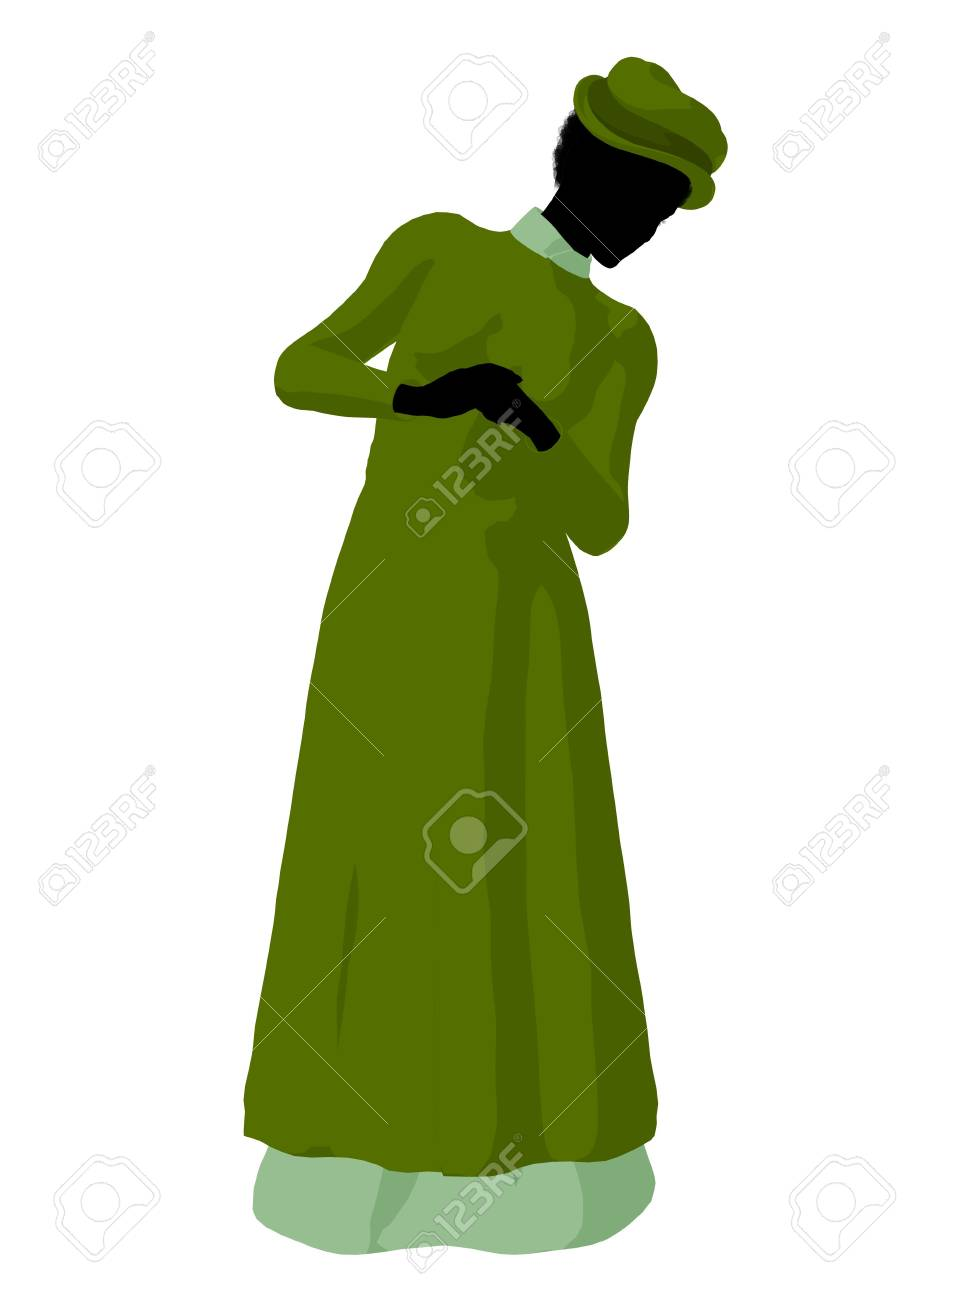 532ea0034d6 African american victorian woman art illustration silhouette on a white  background Stock Illustration - 7655208